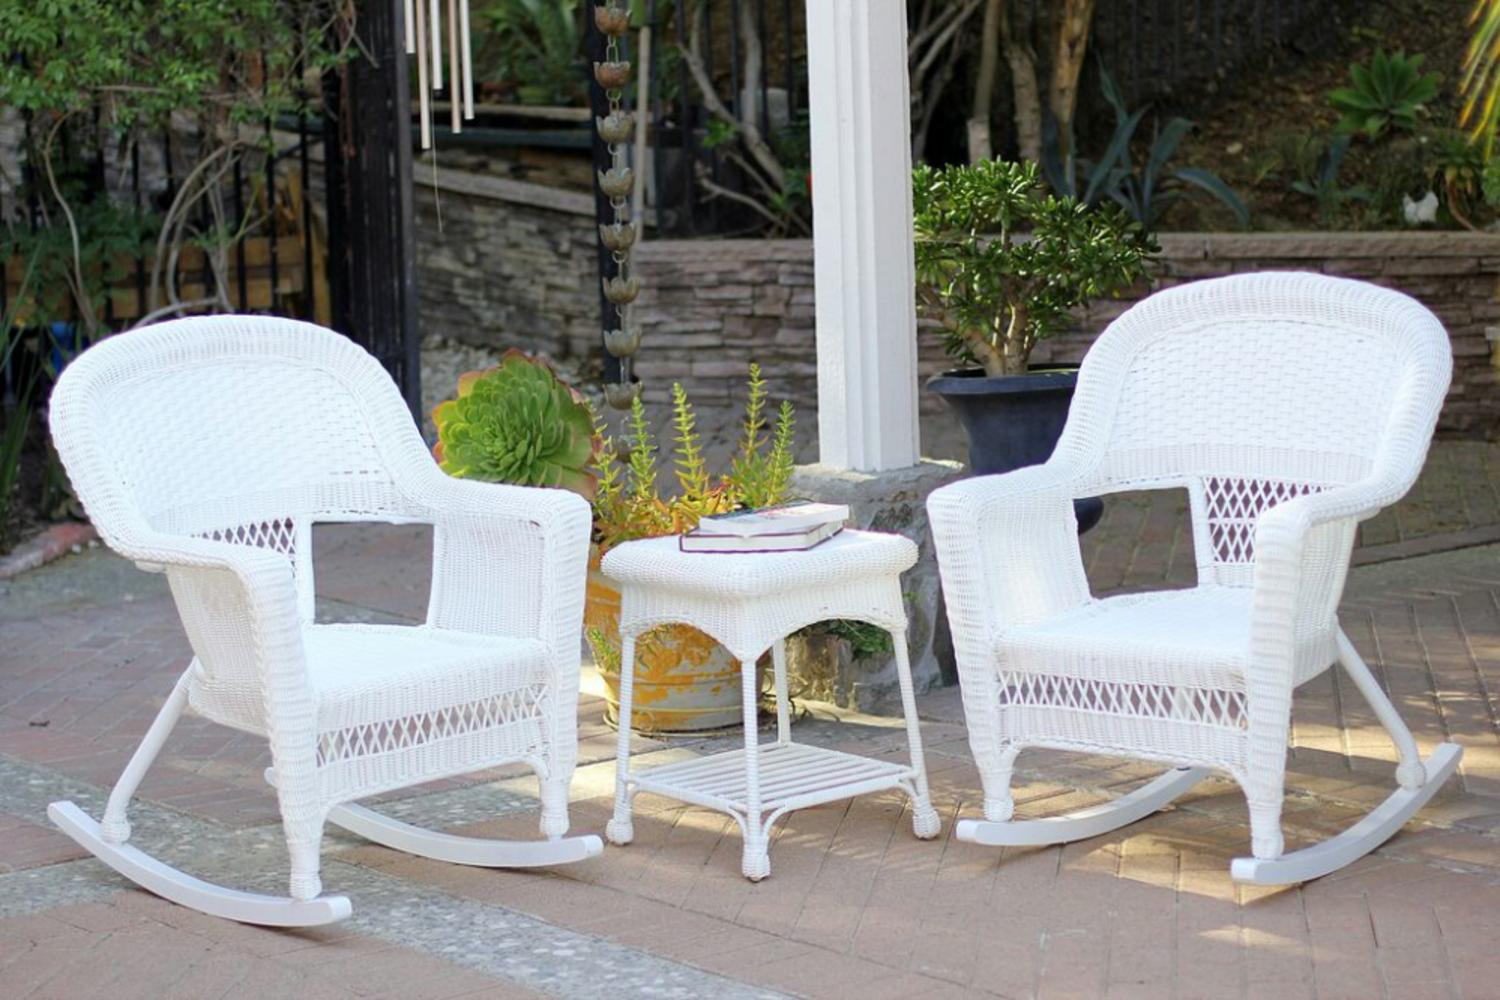 3-Piece Ariel White Resin Wicker Patio Rocker Chairs and Table Furniture Set by Resin Furniture